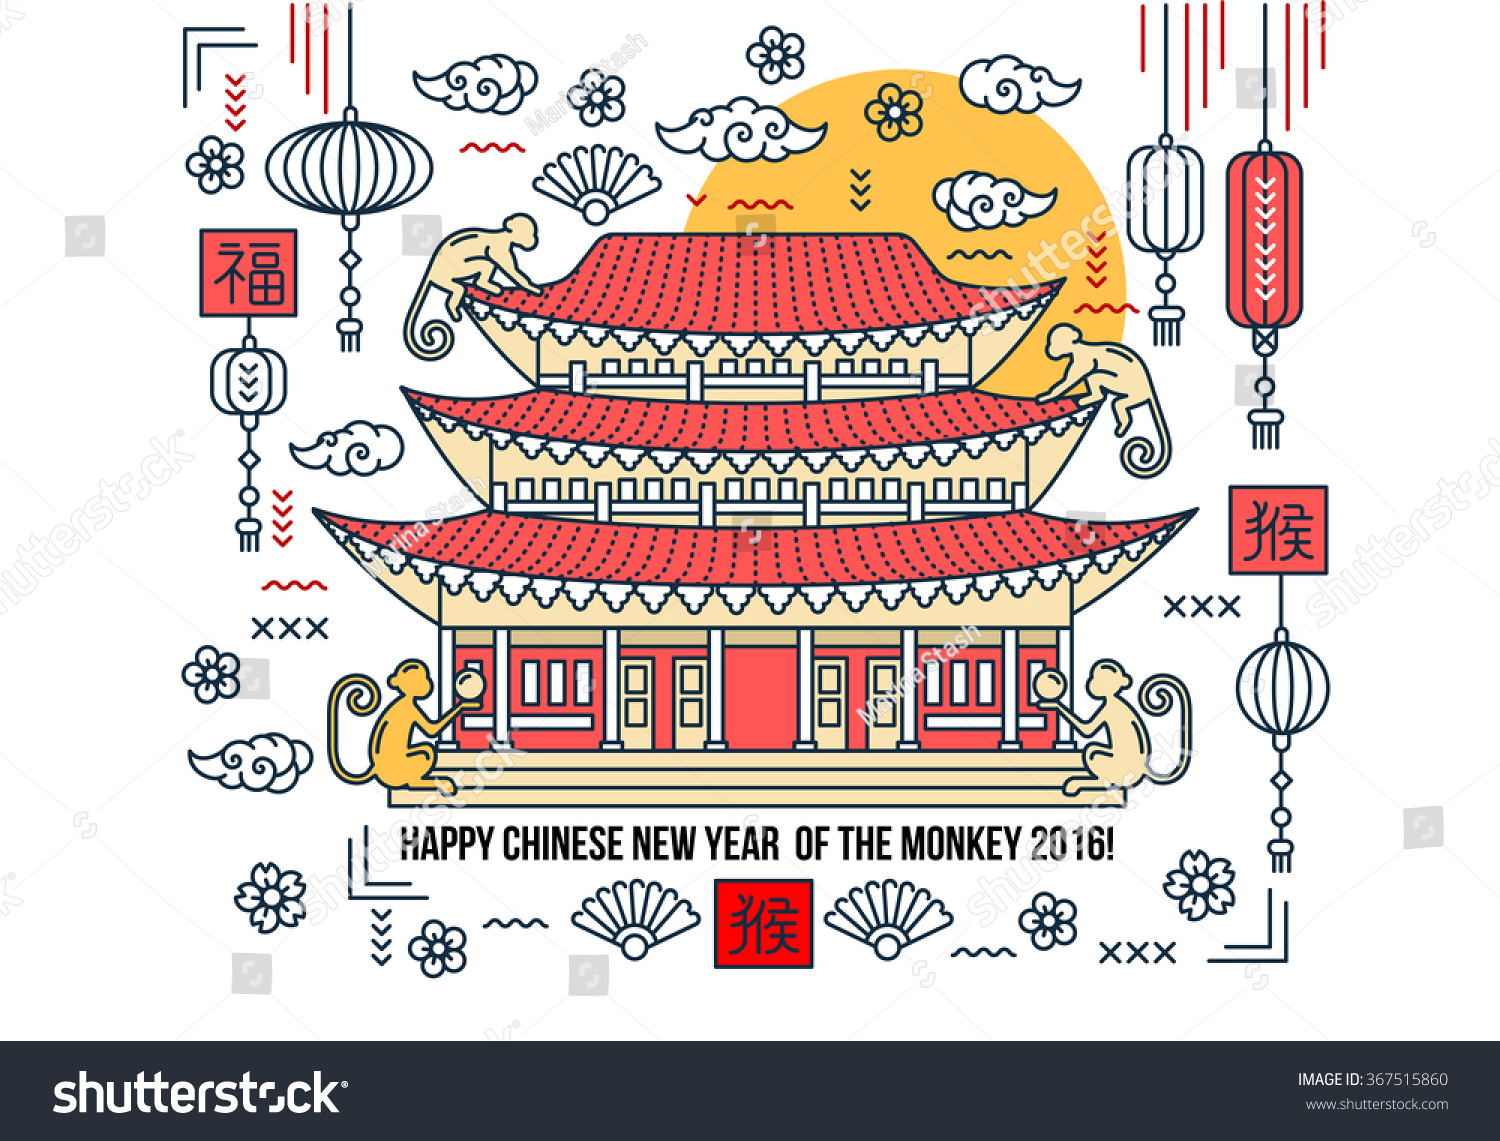 Chinese new year flat thin line stock vector 367515860 shutterstock chinese new year flat thin line greeting card template temple pagoda house lantern kristyandbryce Gallery